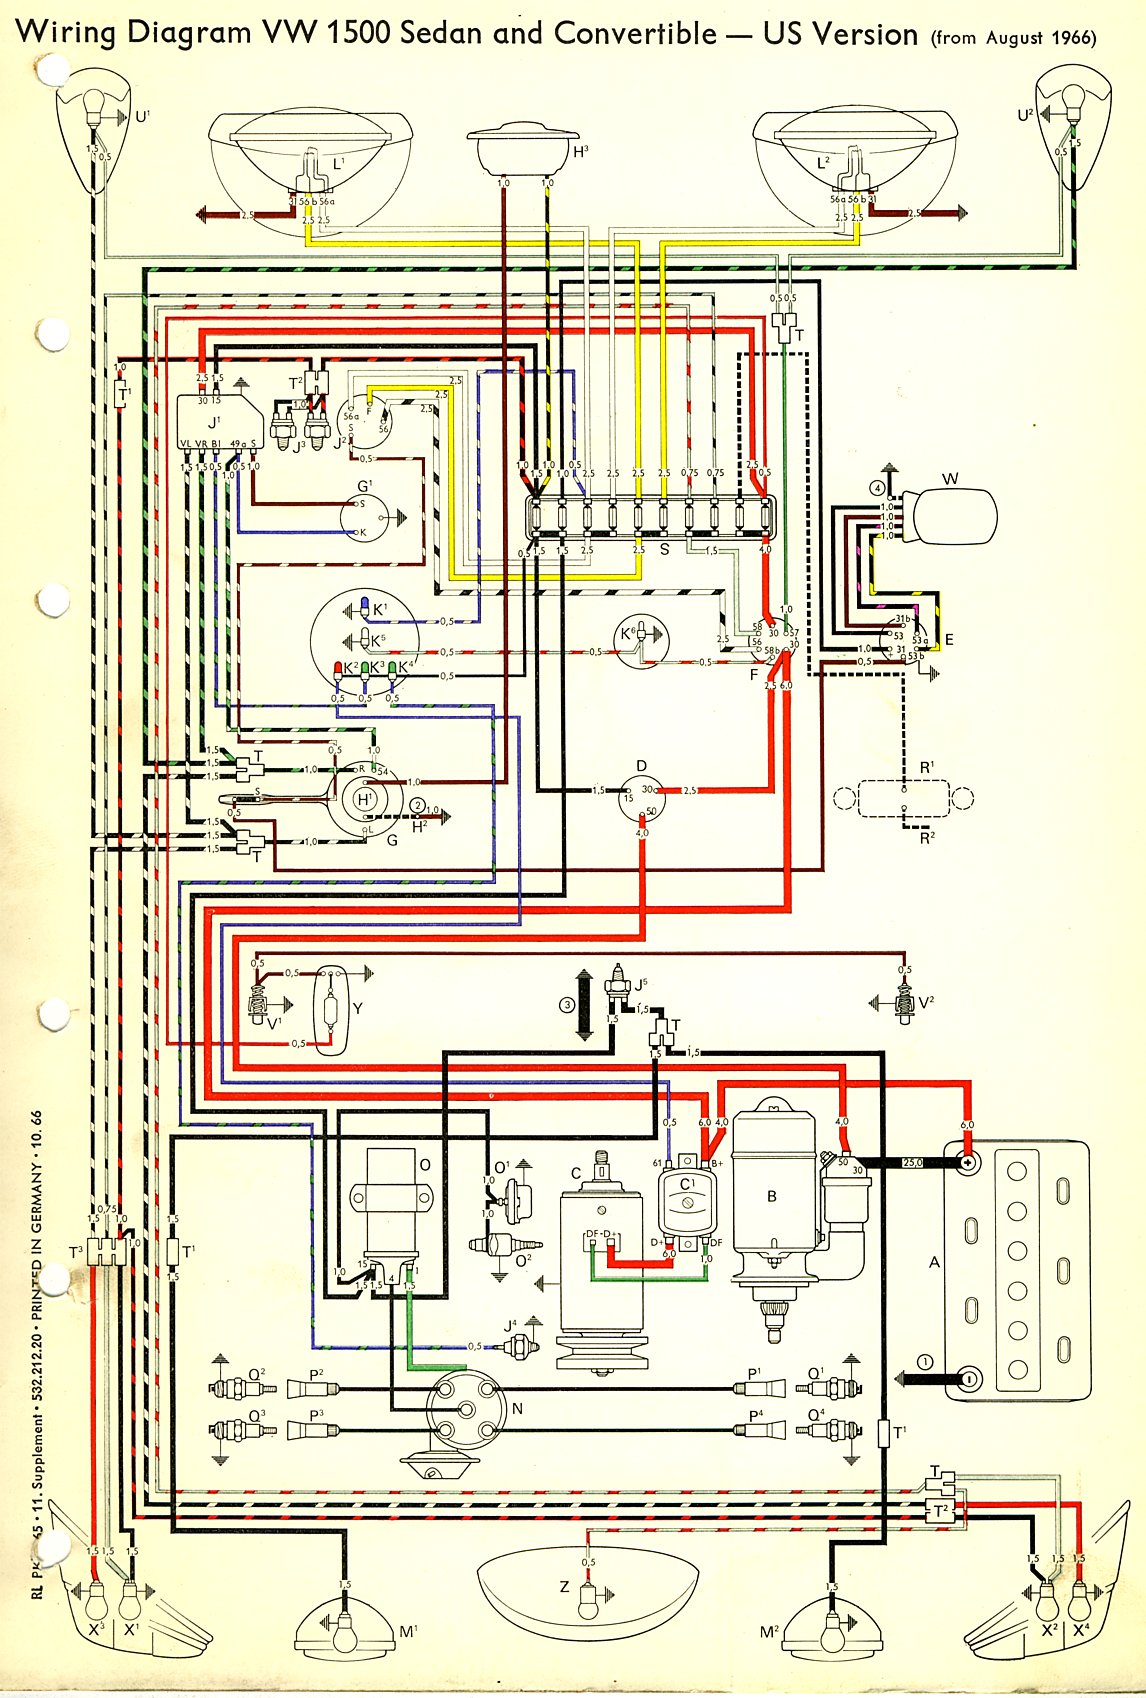 bug_67_USA vw type 1 wiring diagram 1961 vw type 1 wiring diagram \u2022 wiring 69 vw wiring harness at reclaimingppi.co